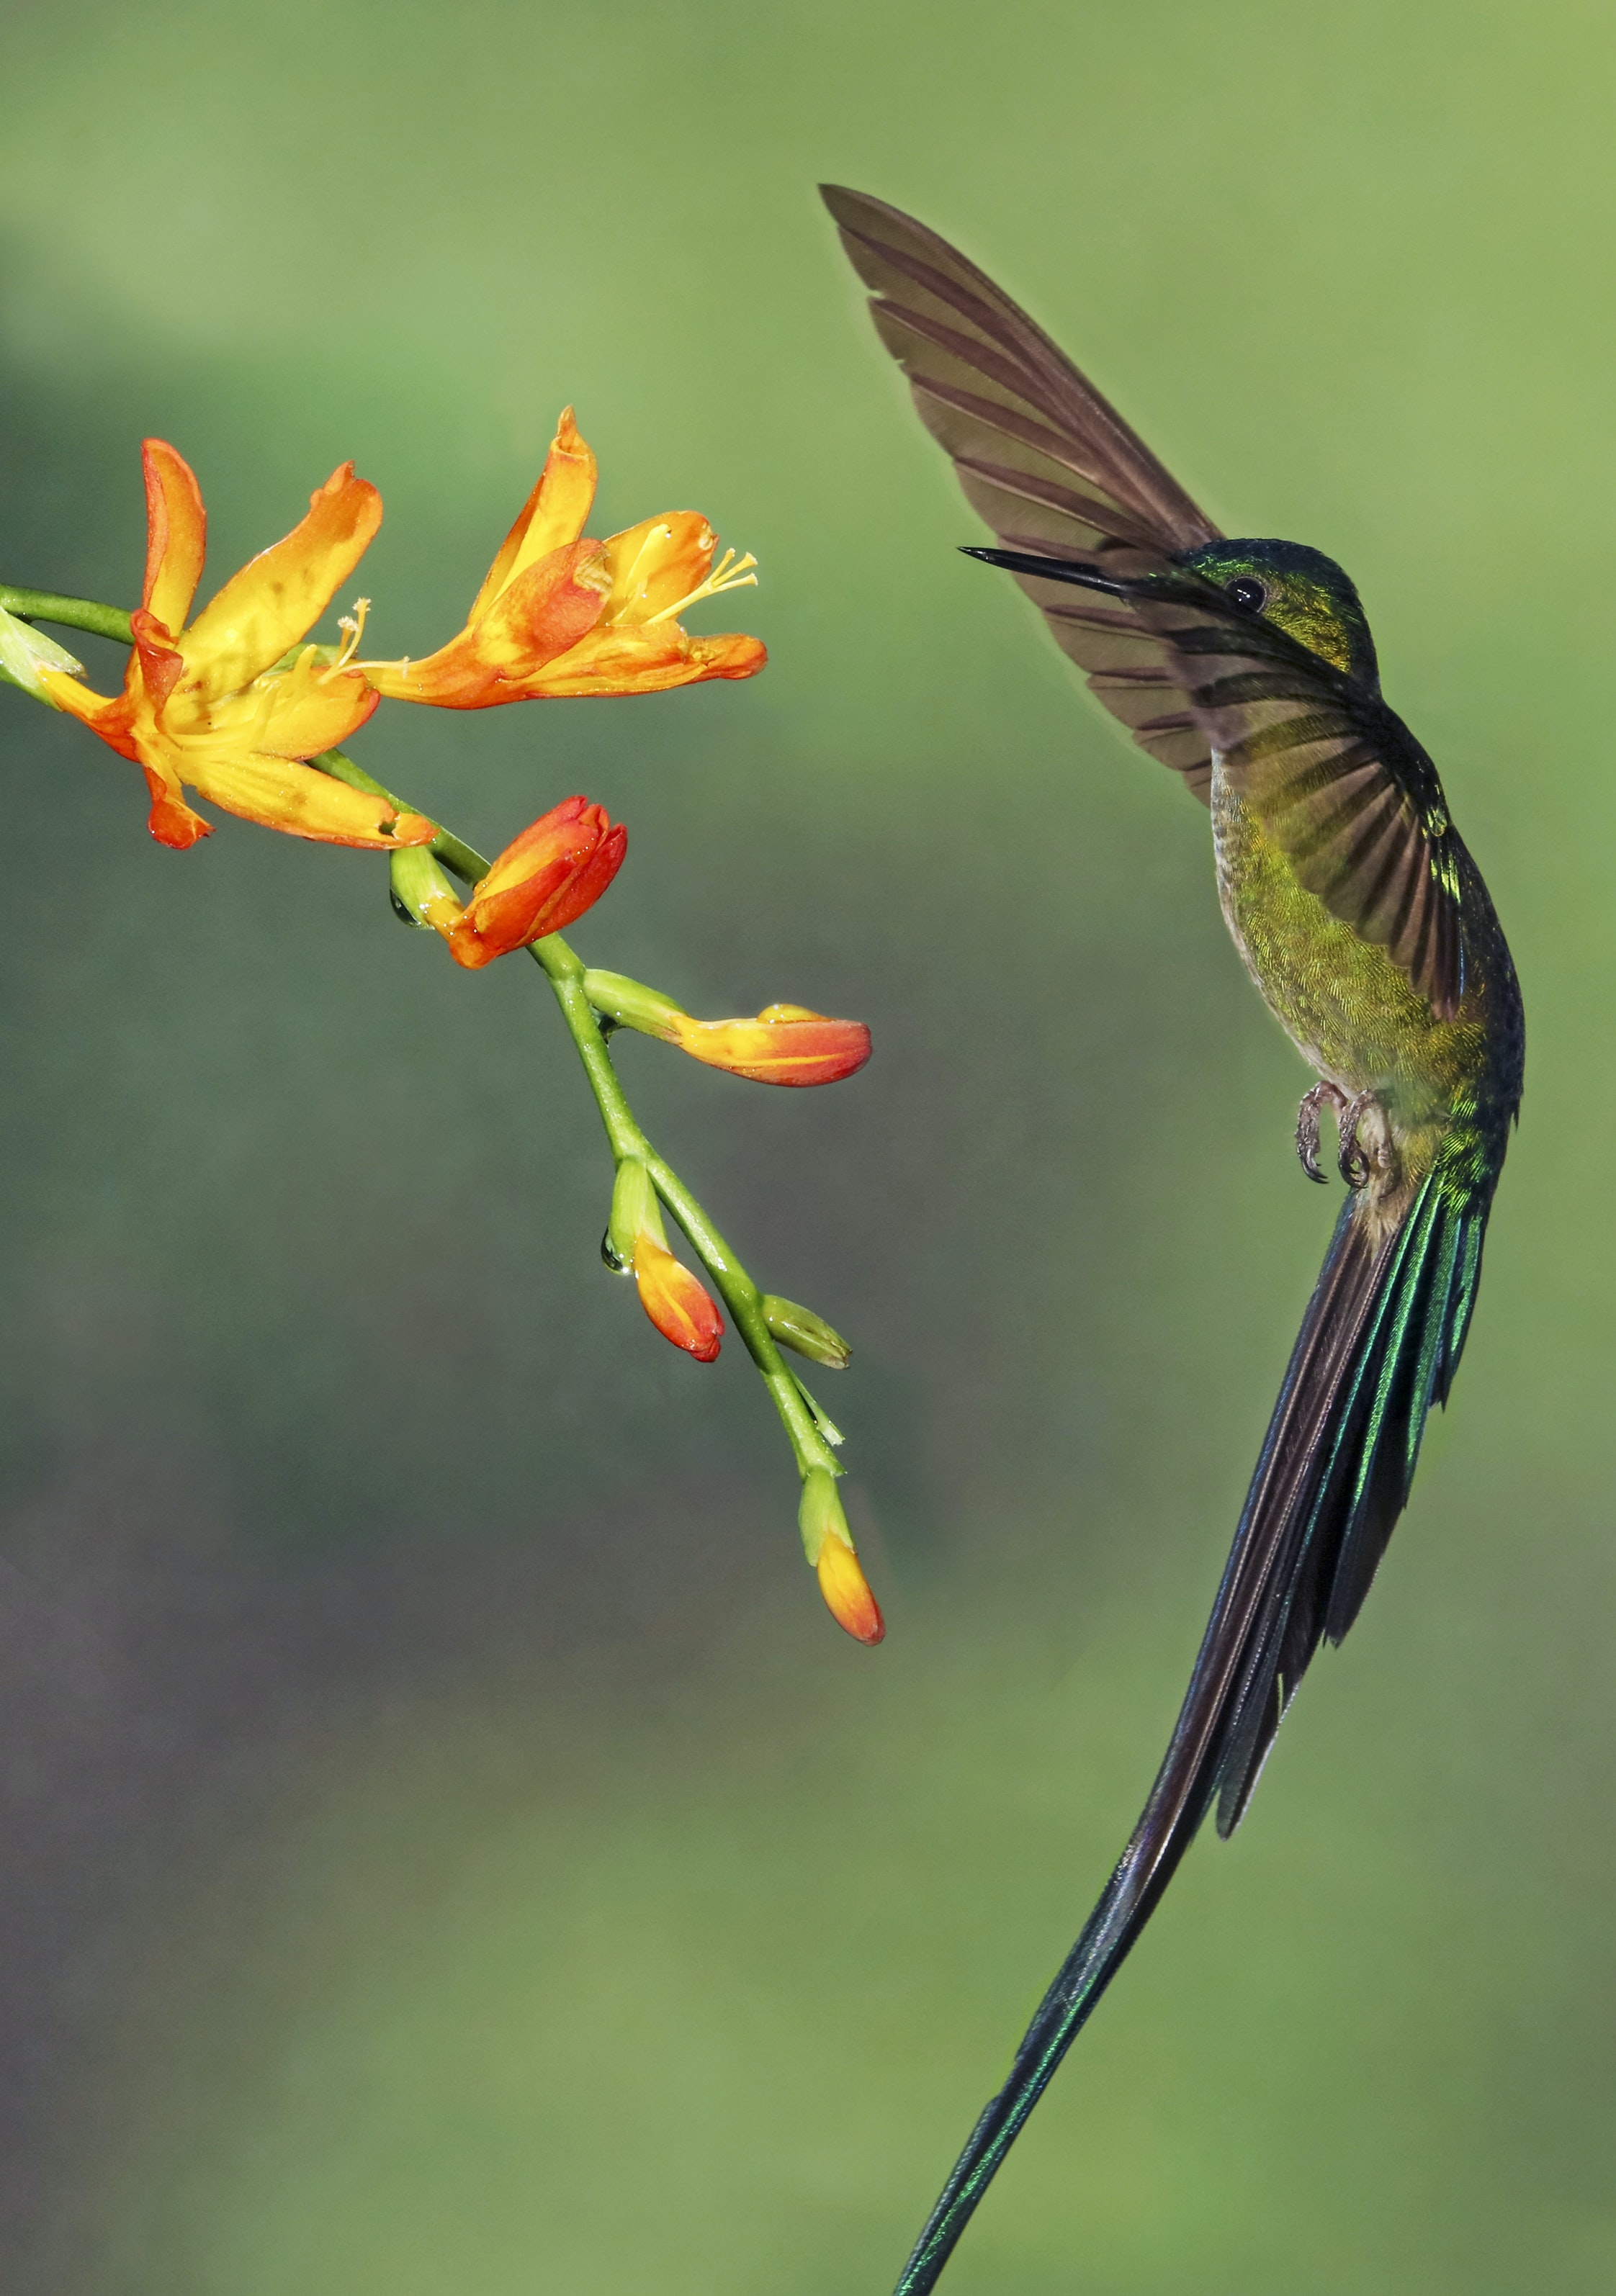 macro photography of bird and flower